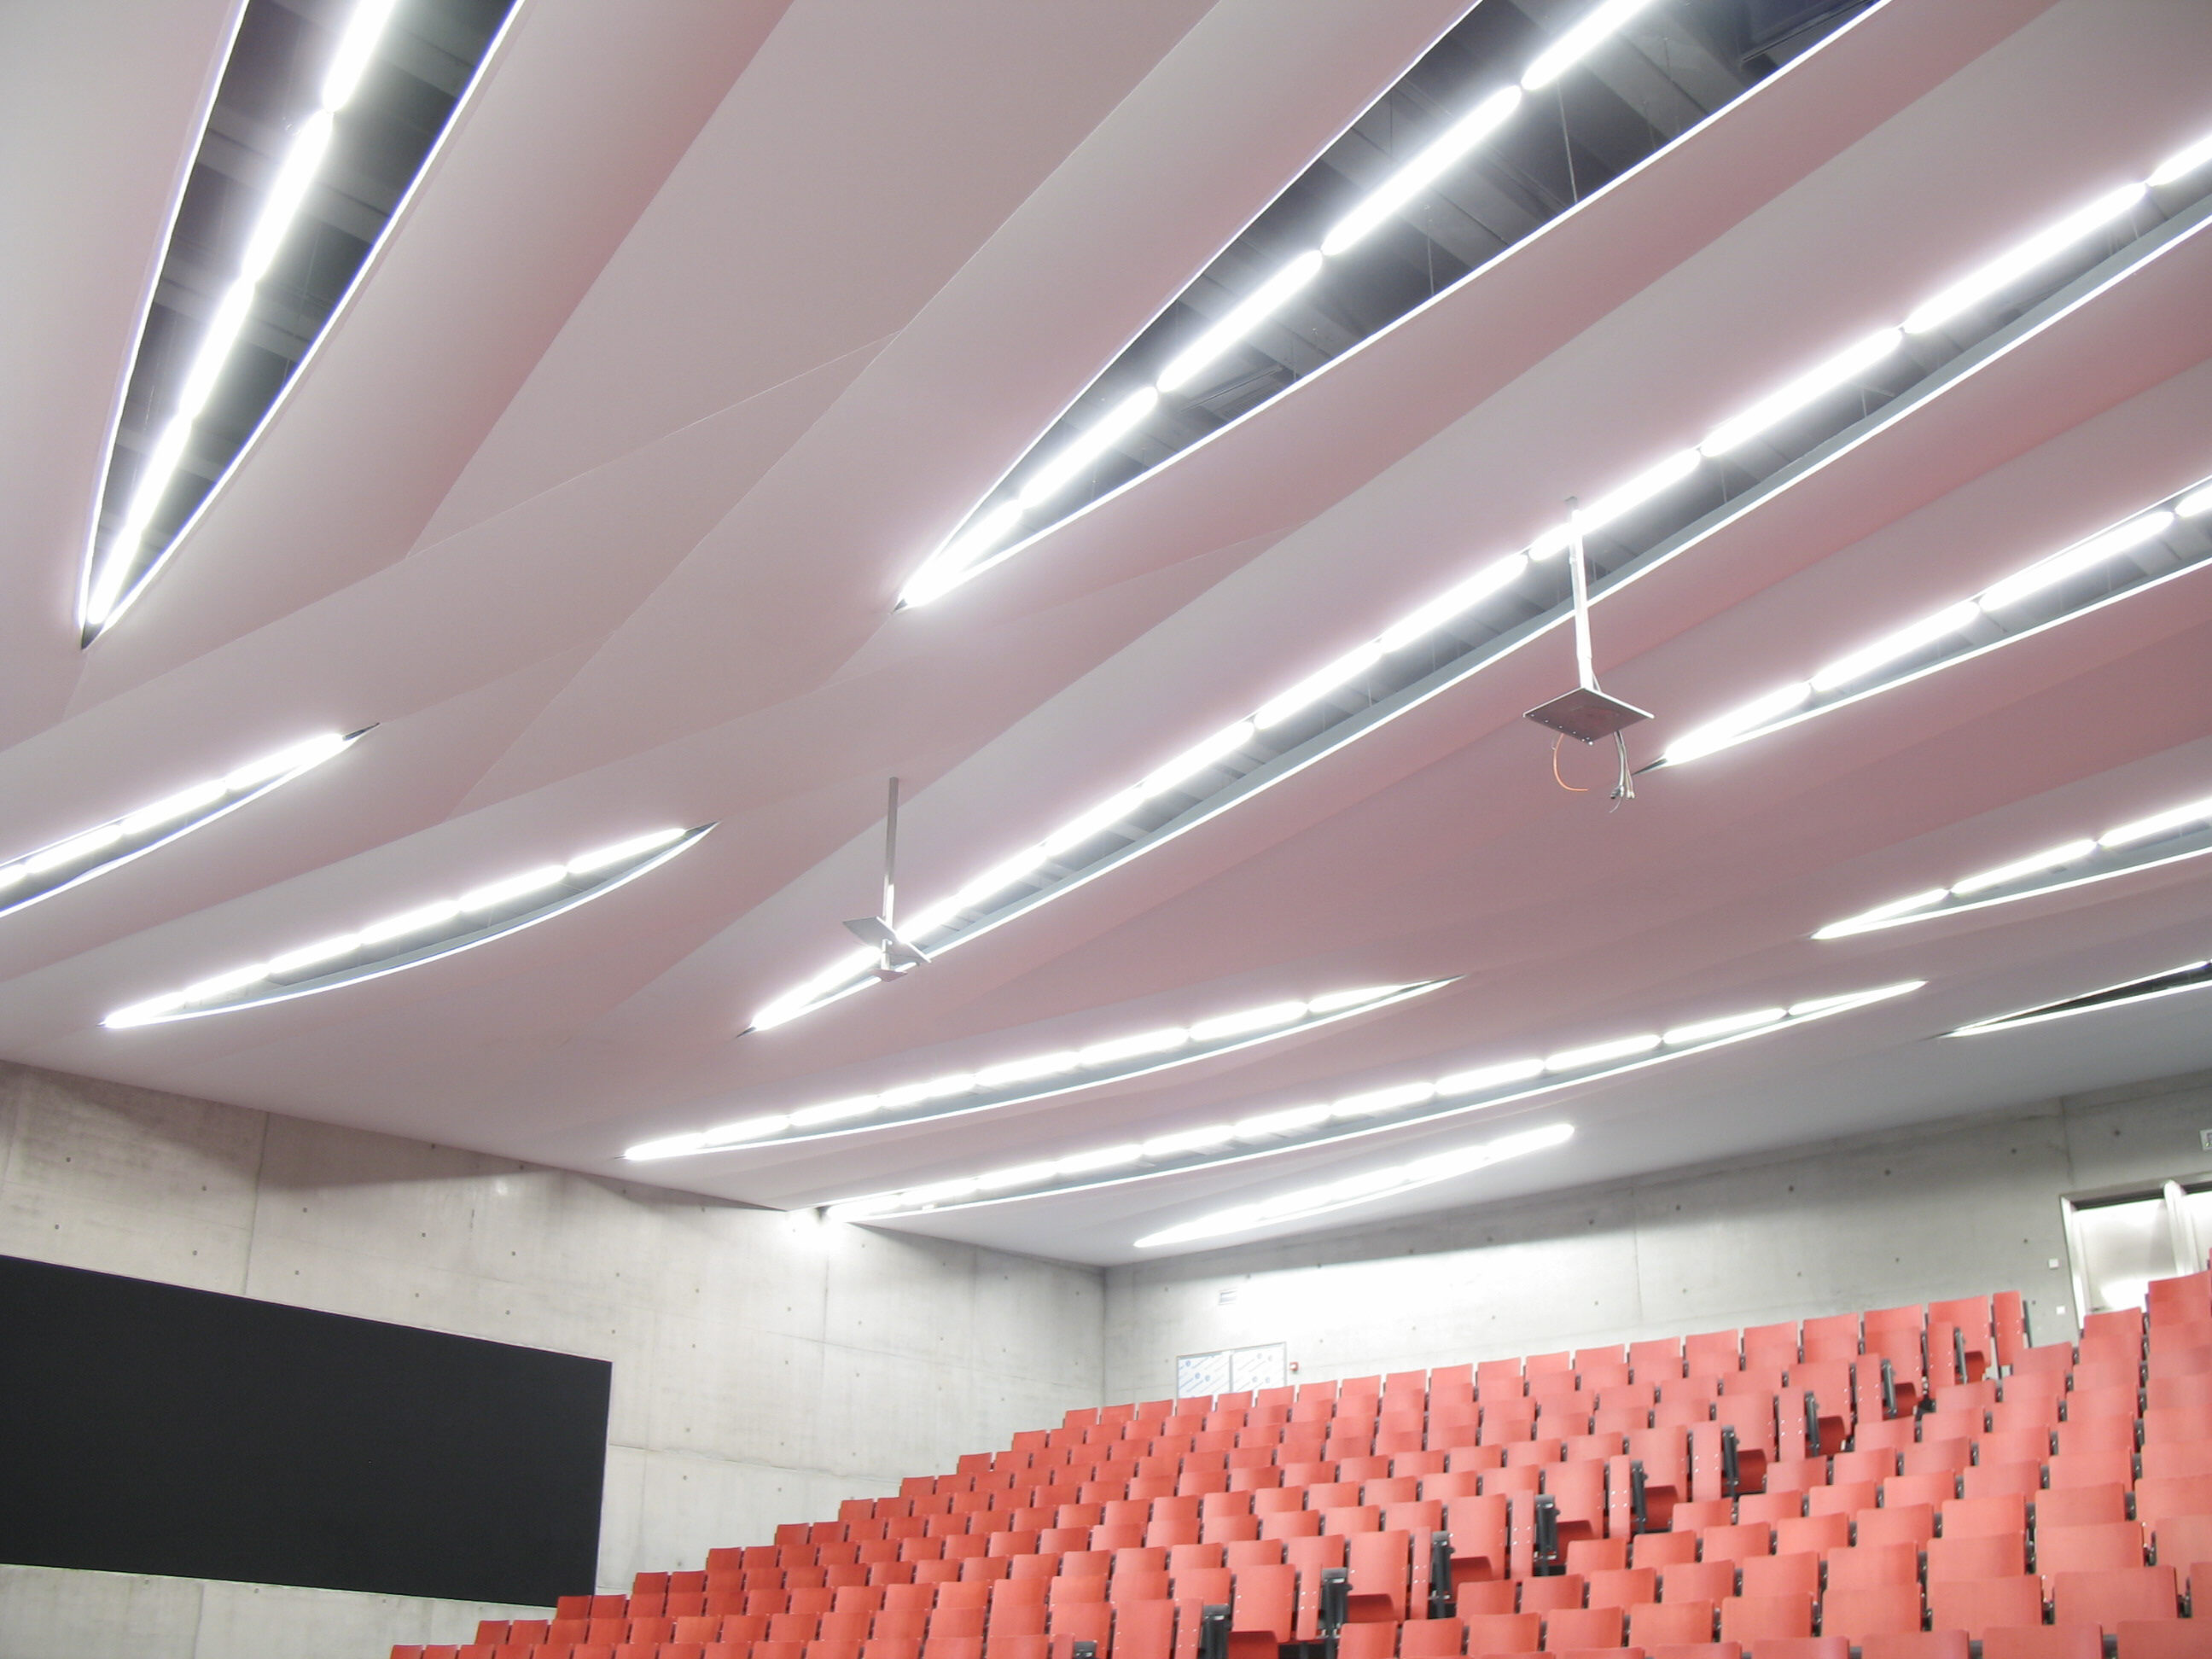 ceilings ceiling supply and stretch uk ltd worldwide acoustics install solutions image acoustic